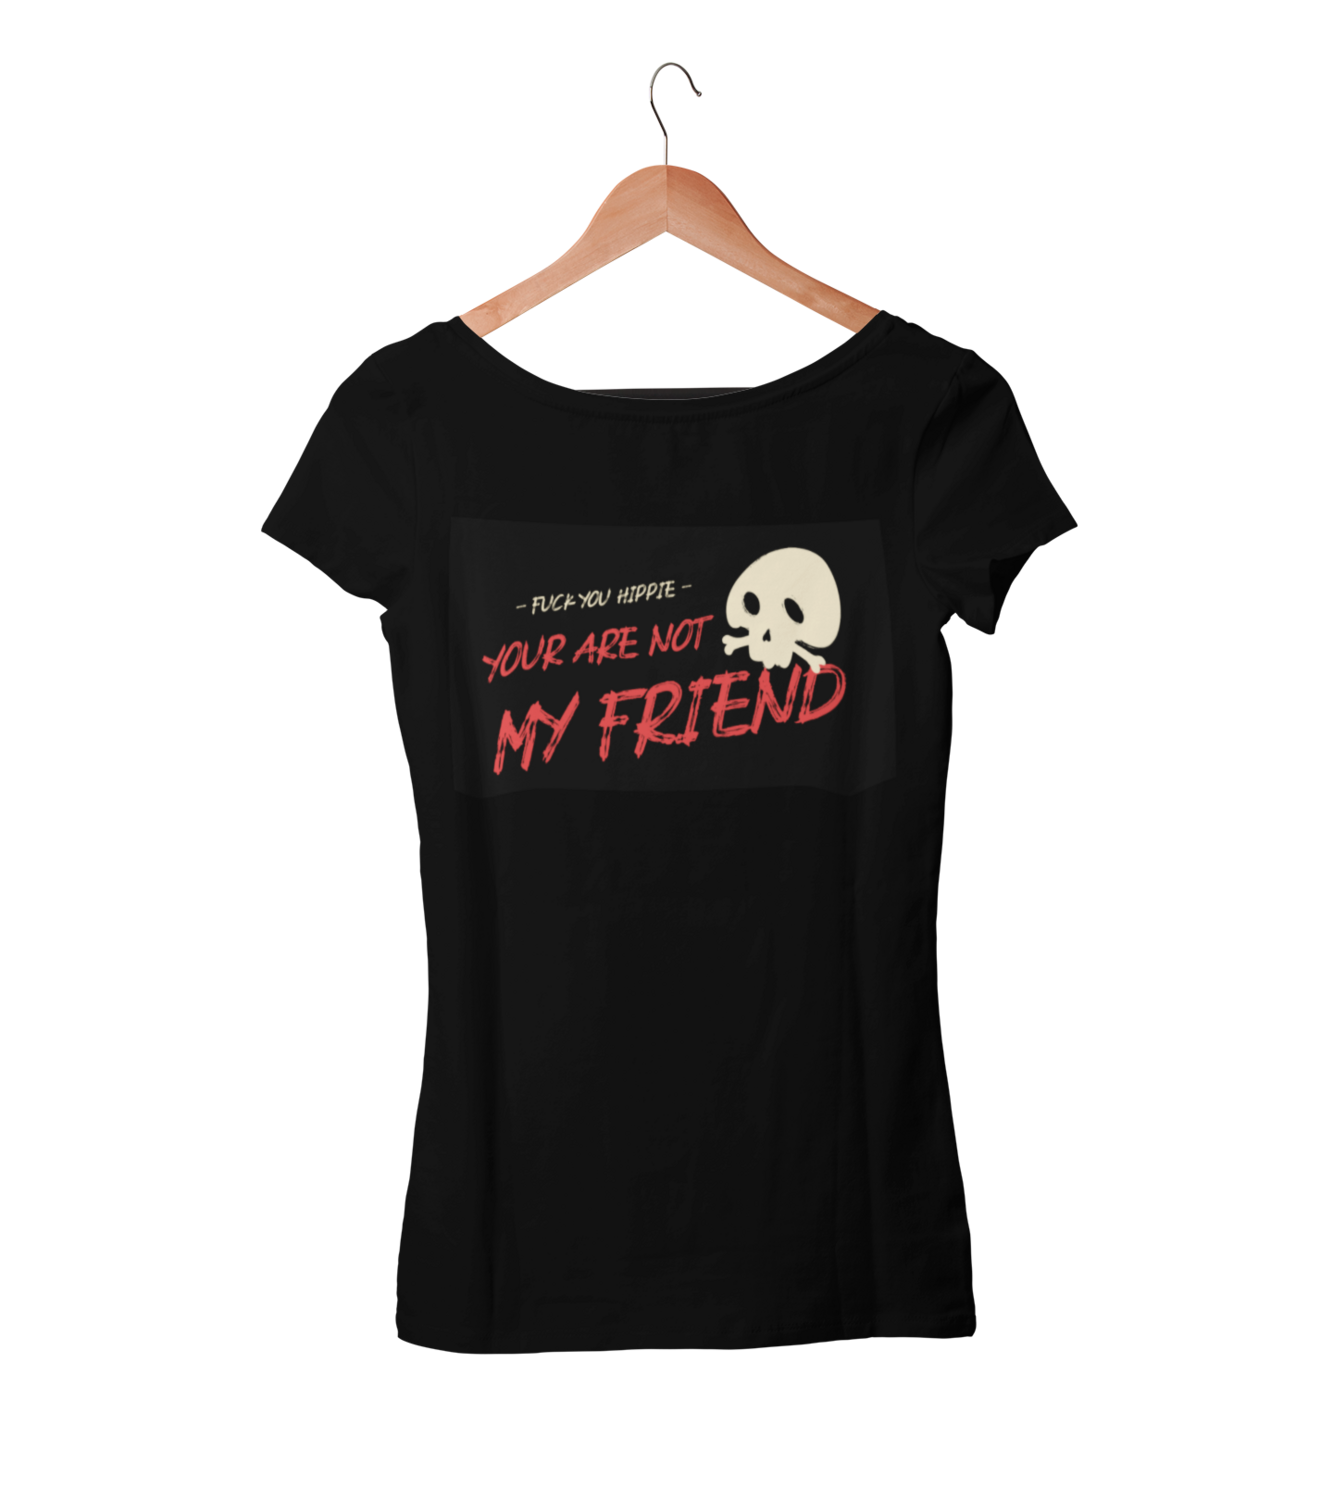 YOUR ARE NOT MY FRIEND T-SHIRT FOR WOMEN